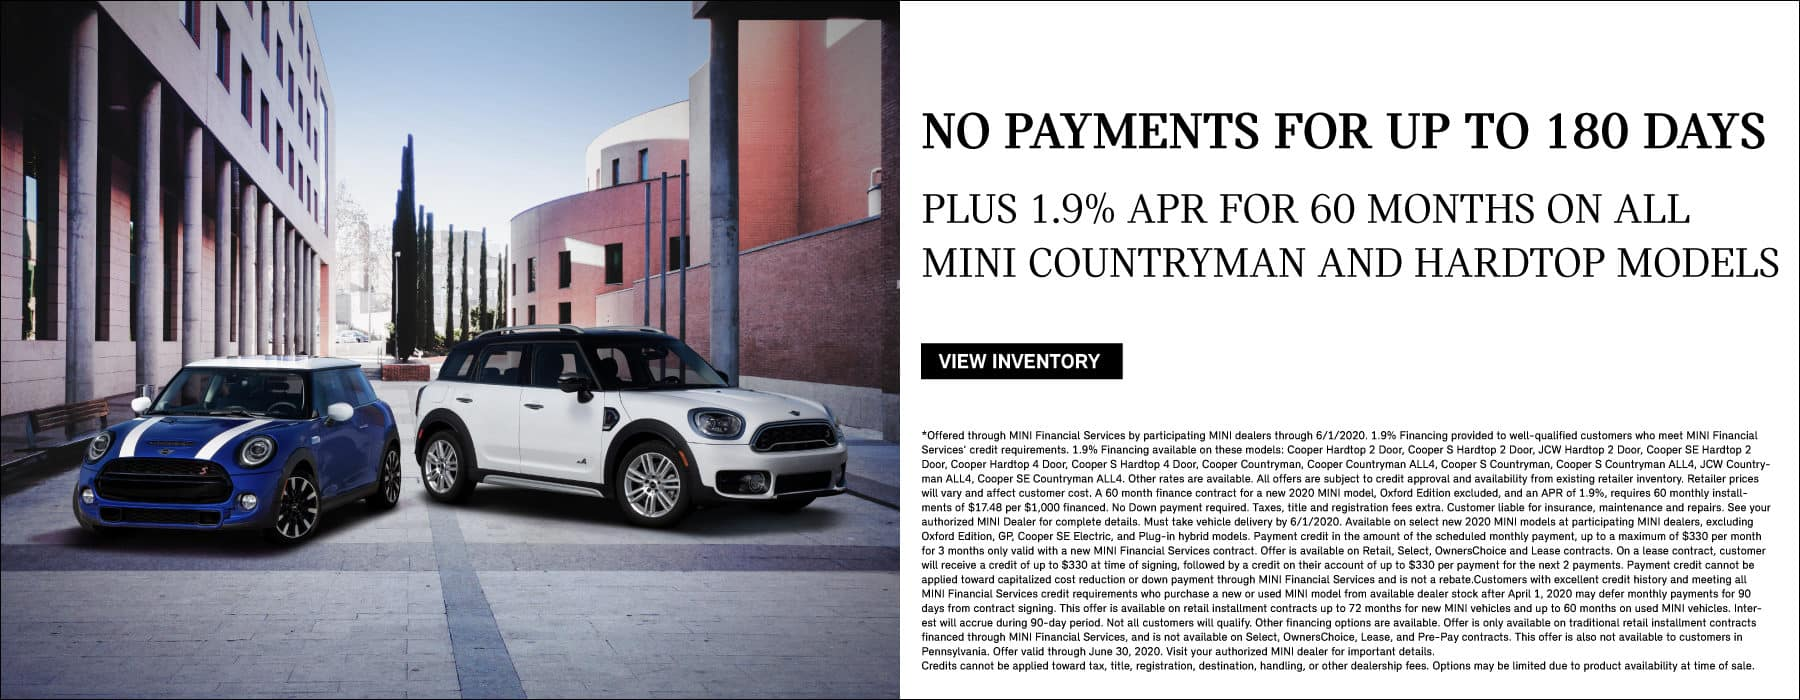 No payments for up to 180 days. Plus 1.9% APR for 60 months on all MINI Countryman and Hardtop models.